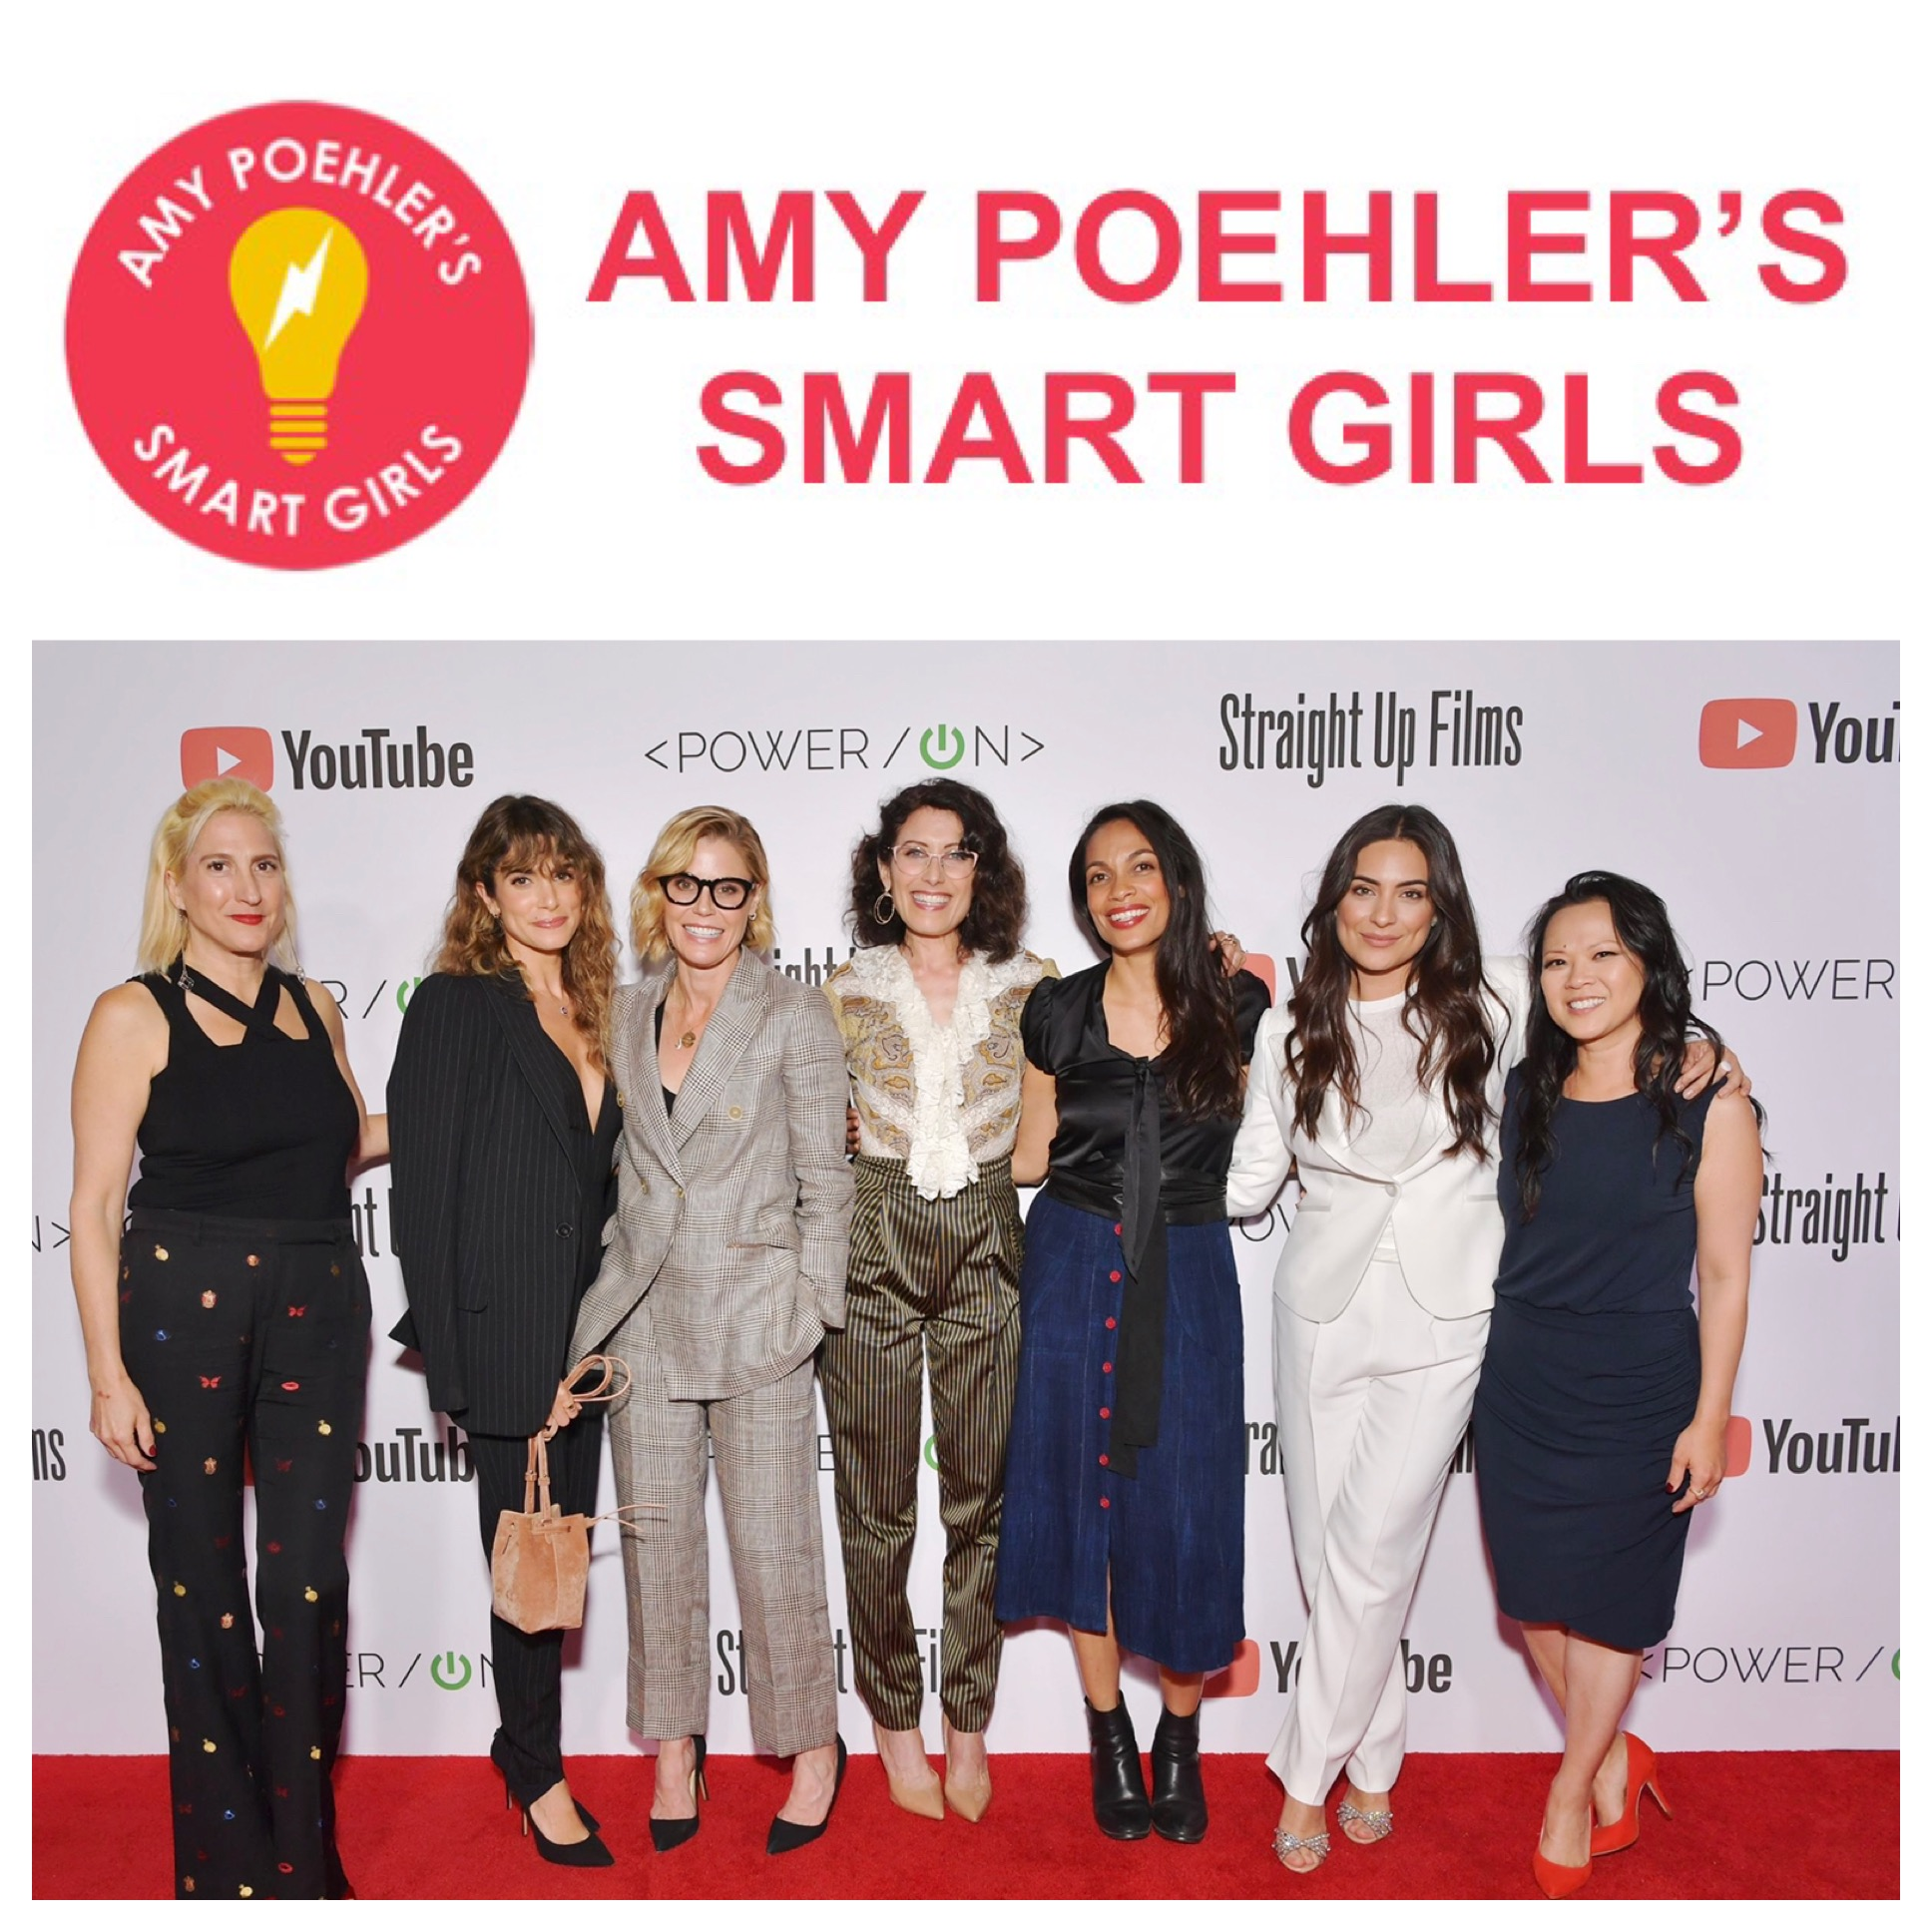 "- (Amy Poehler's Smart Girls, June 8, 2019) Power On: 5 Short Films Inspiring Girls to Pursue STEAM EducationSmart Girls' Meredith Walker sat down with Ngoc Nguyen producer of ""Power On,"" a collection of 5 short films that are meant to inspire more girls to pursue STEAM fields in school to discuss: representation, challenges, advice, and strategy. (Full Article.)"